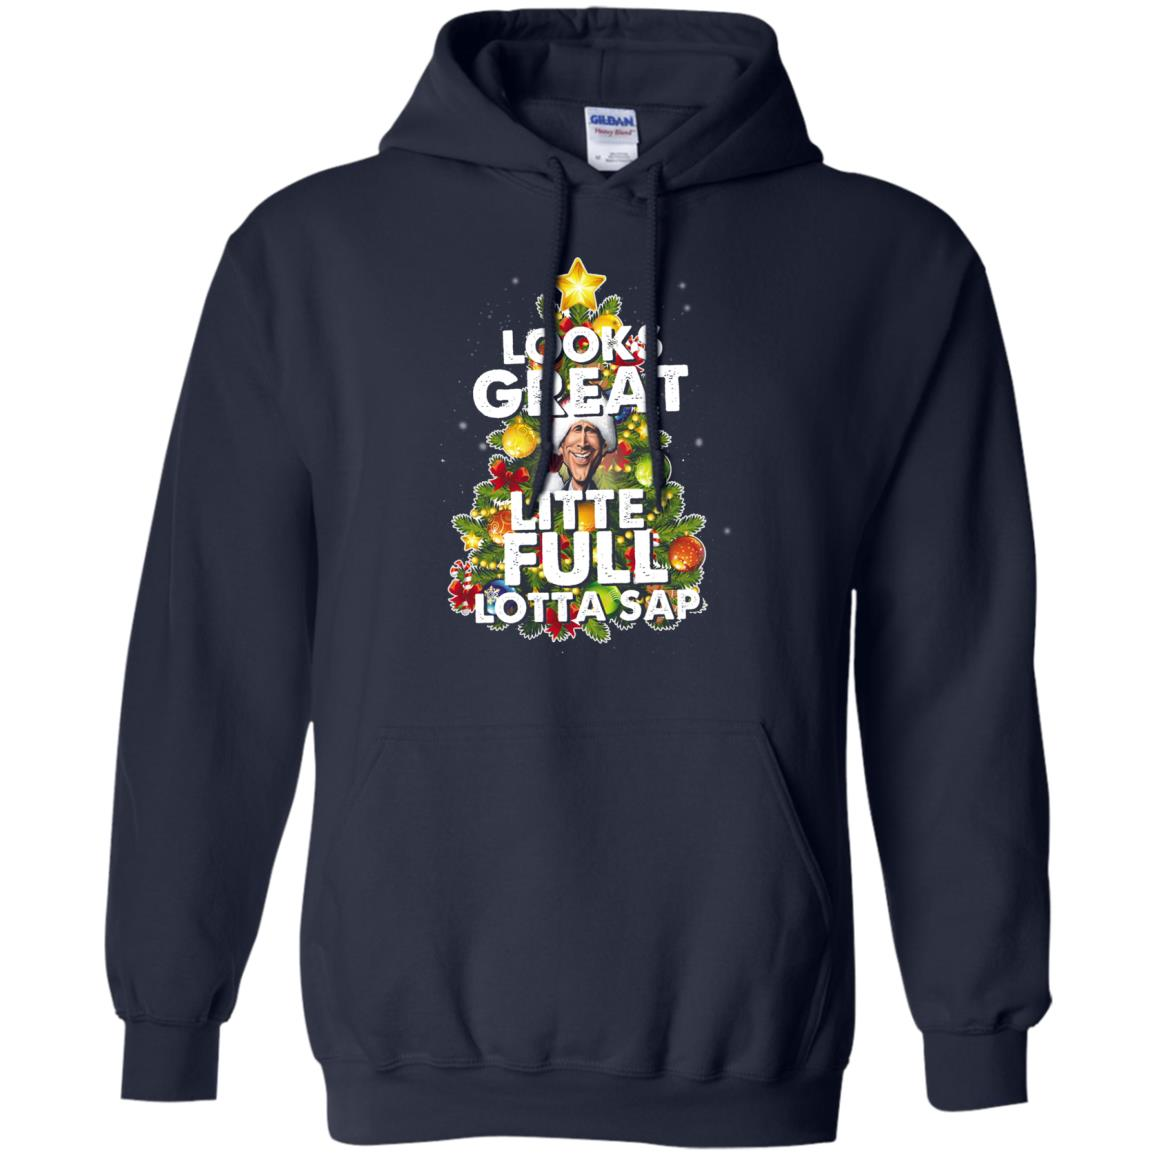 image 2486 - Looks great little full lotta sap ugly Christmas sweater, hoodie